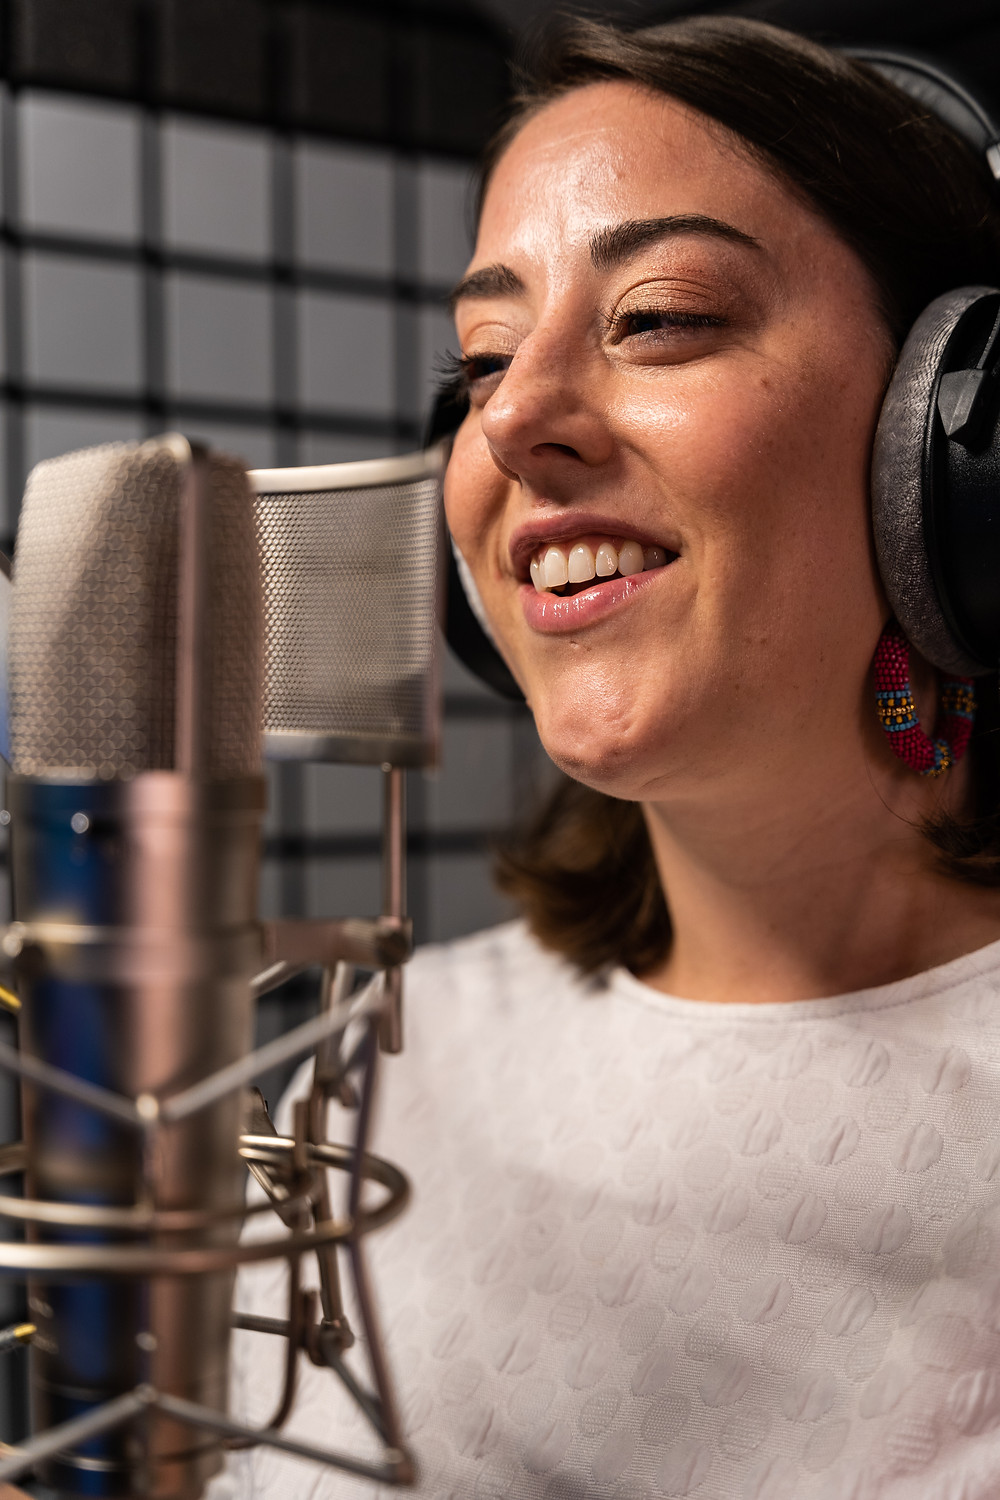 English Speaking Voice Over Actress, Stephanie Matard